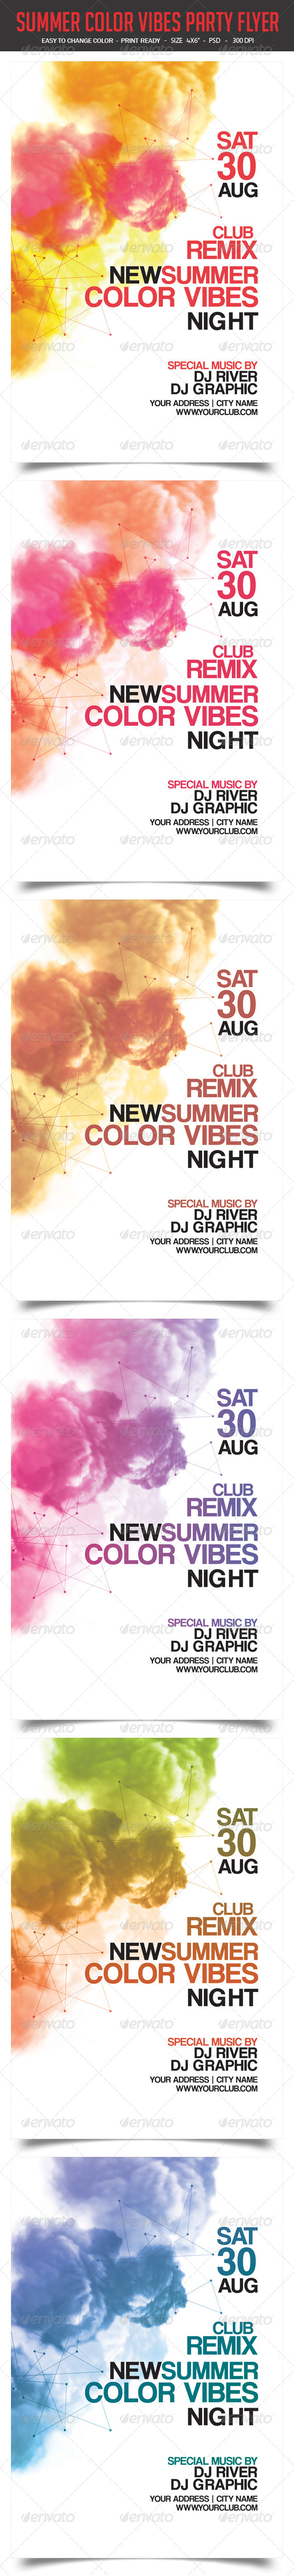 GraphicRiver Summer Color Vibes Party Flyer 8371679